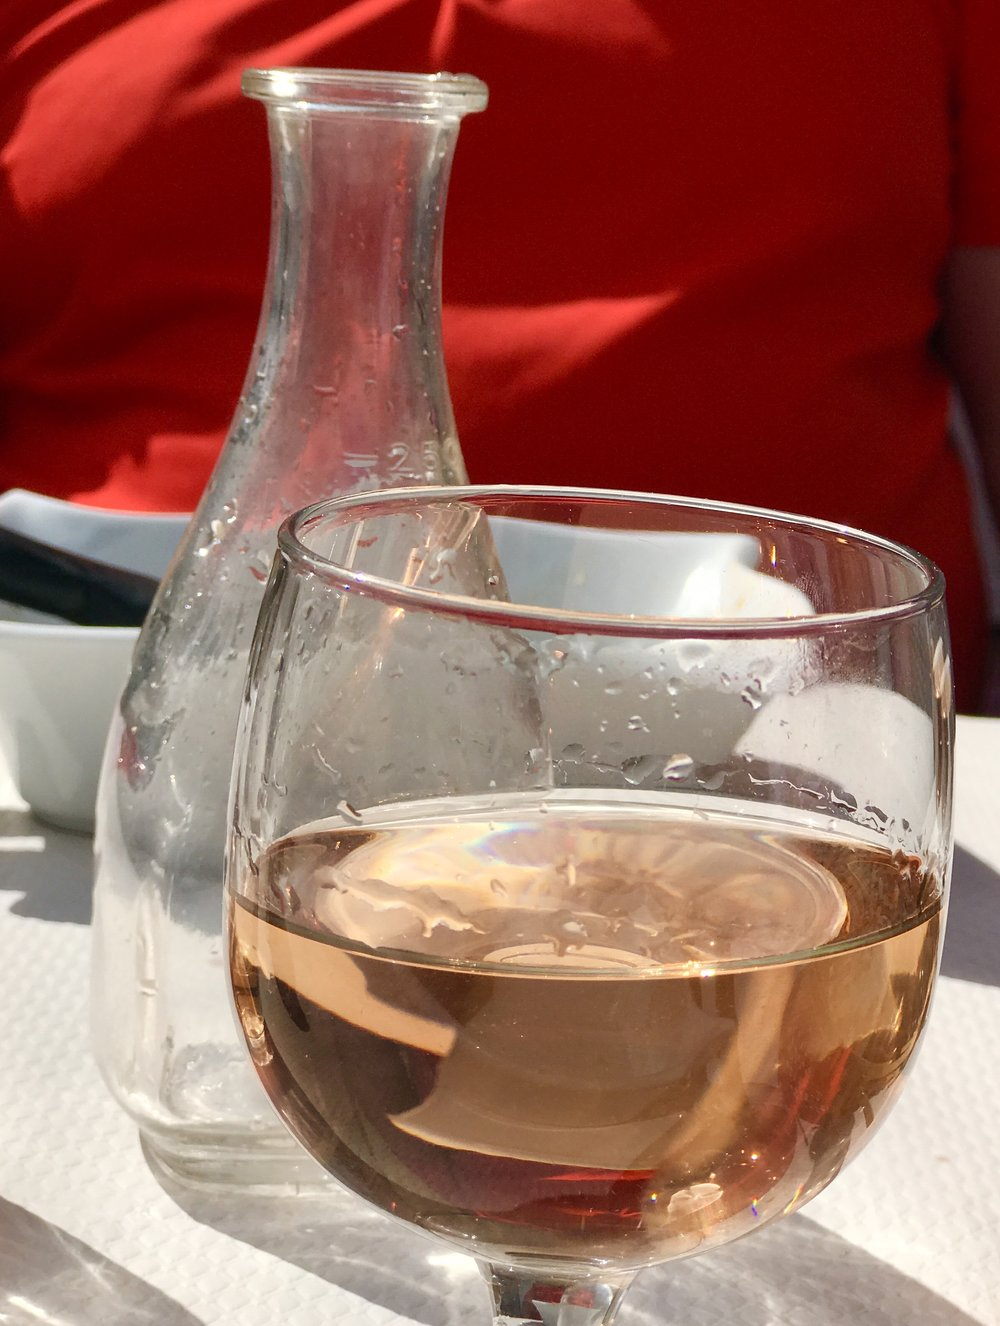 Rosé for lunch.  We had bread too!